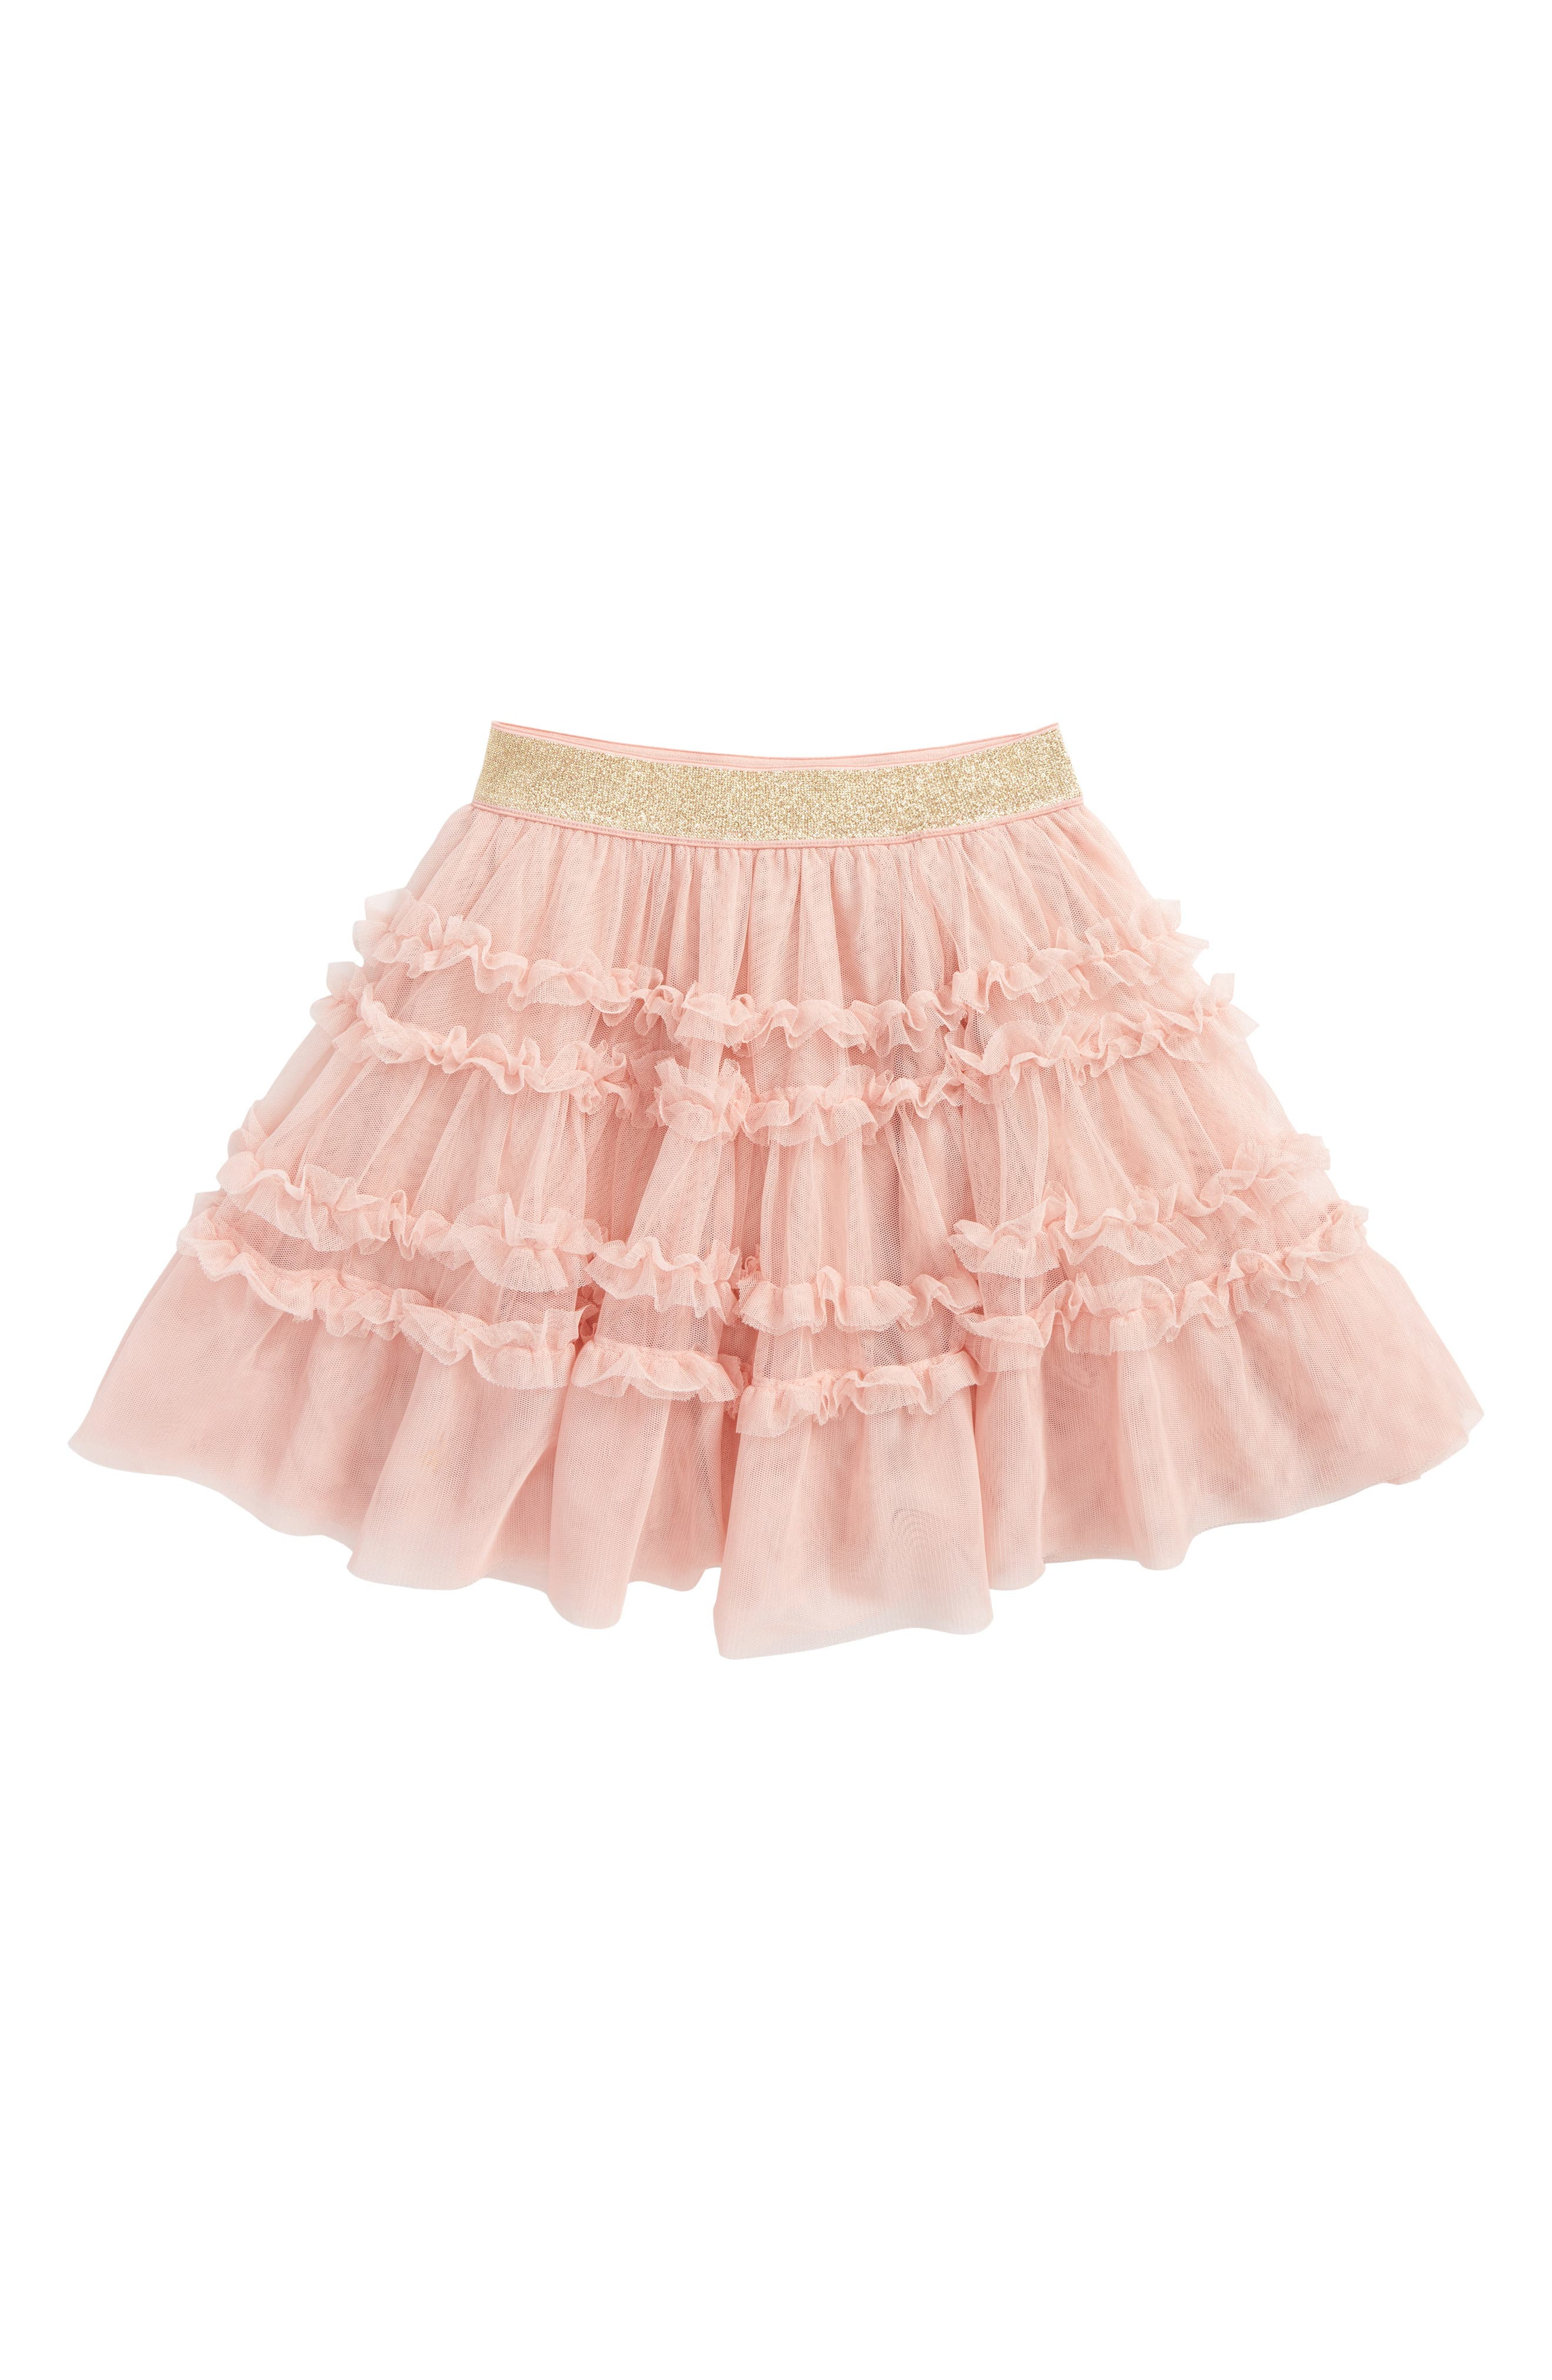 Ruffle Tulle Skirt,                         Main,                         color, Provence Dusty Pink Pnk